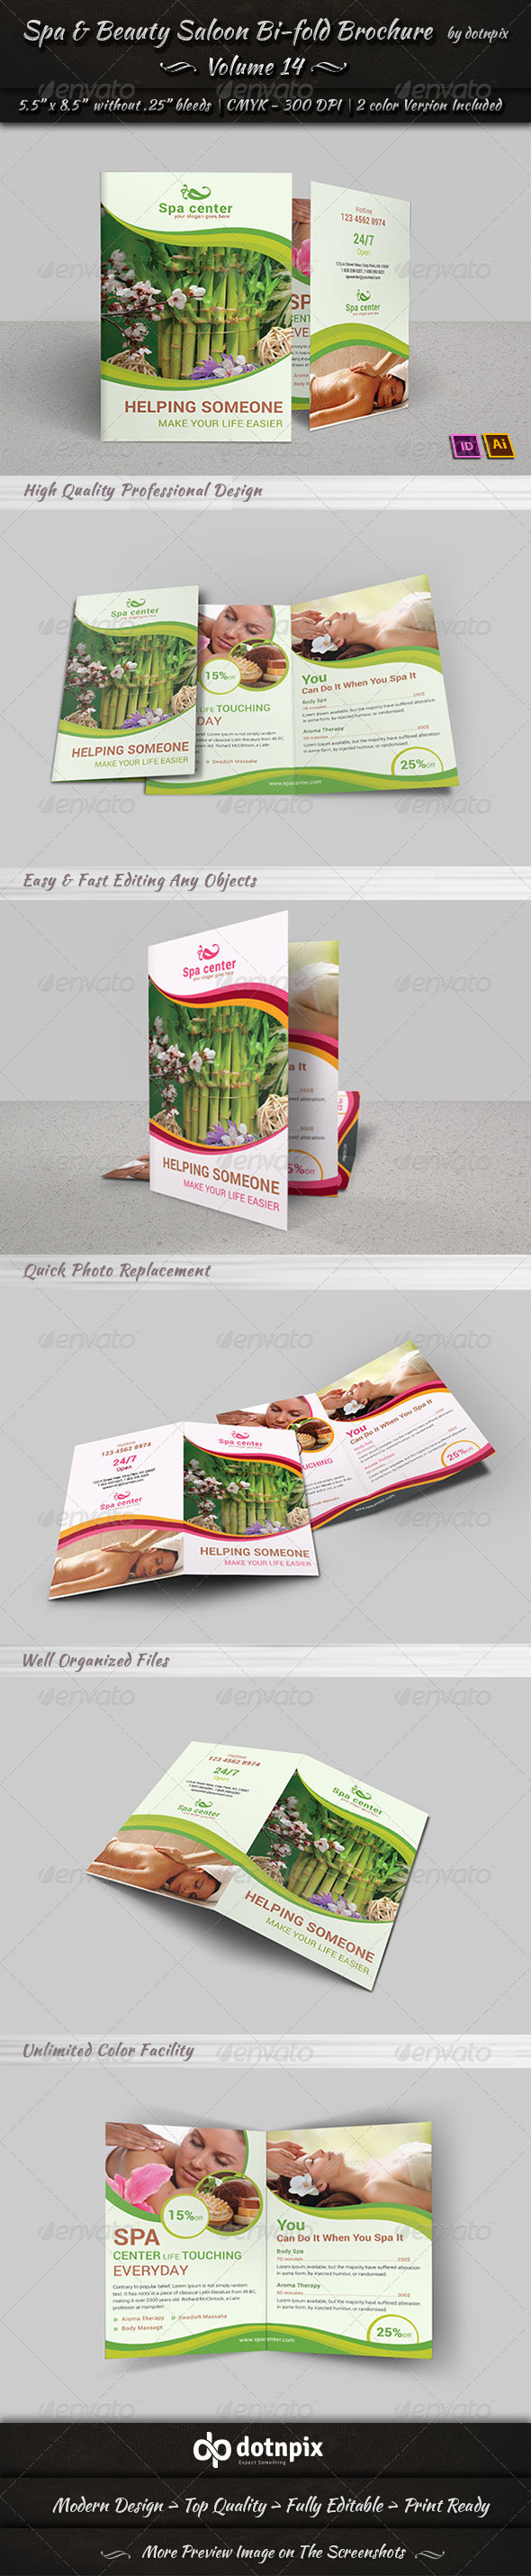 GraphicRiver Spa & Beauty Saloon Bi-Fold Brochure Volume 14 8022404